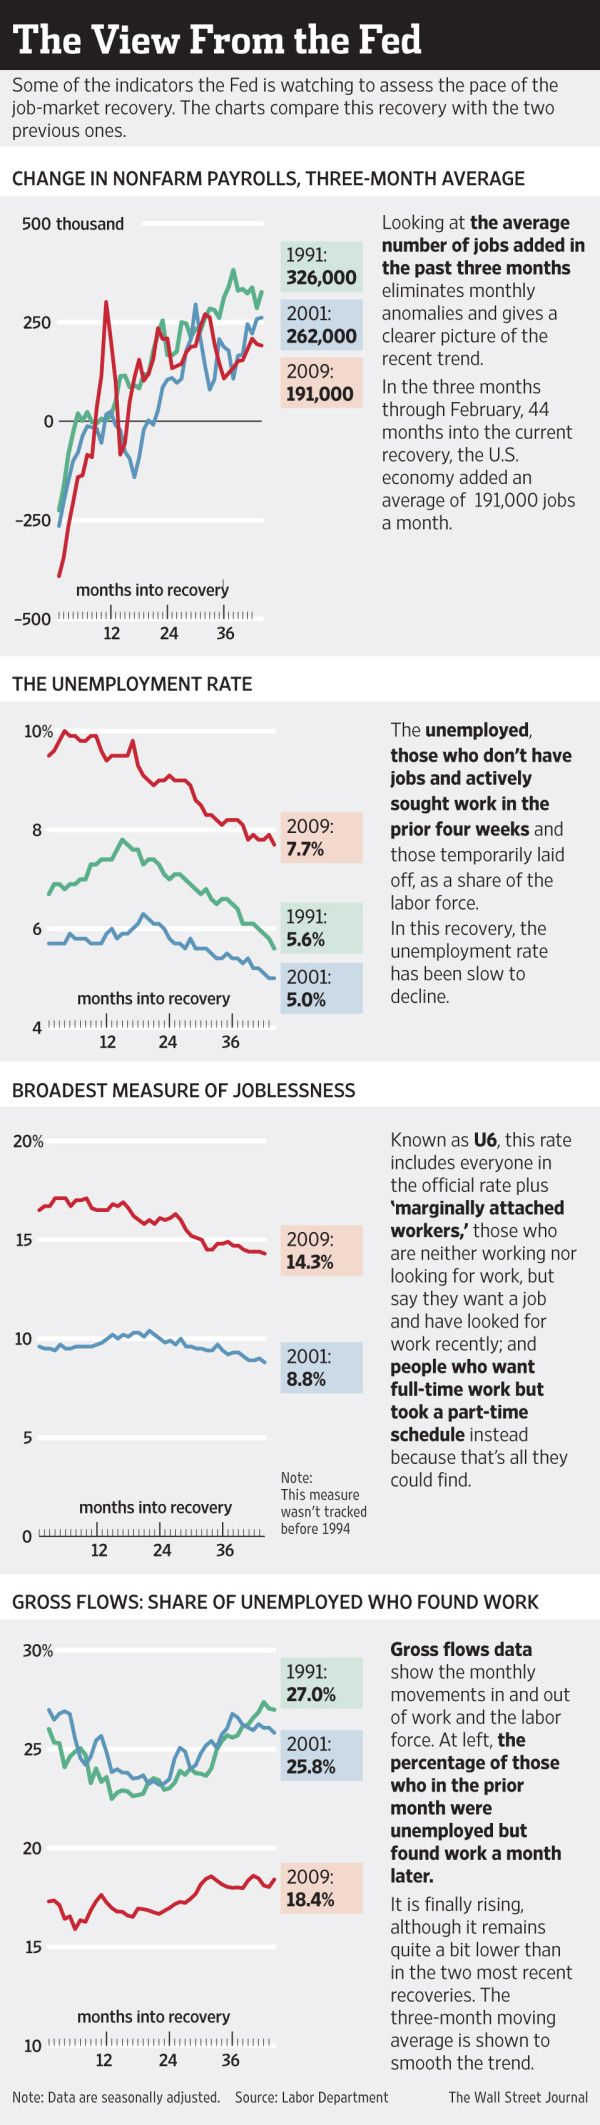 Some of the indicators the Fed is watching to assess the pace of the job-market recovery